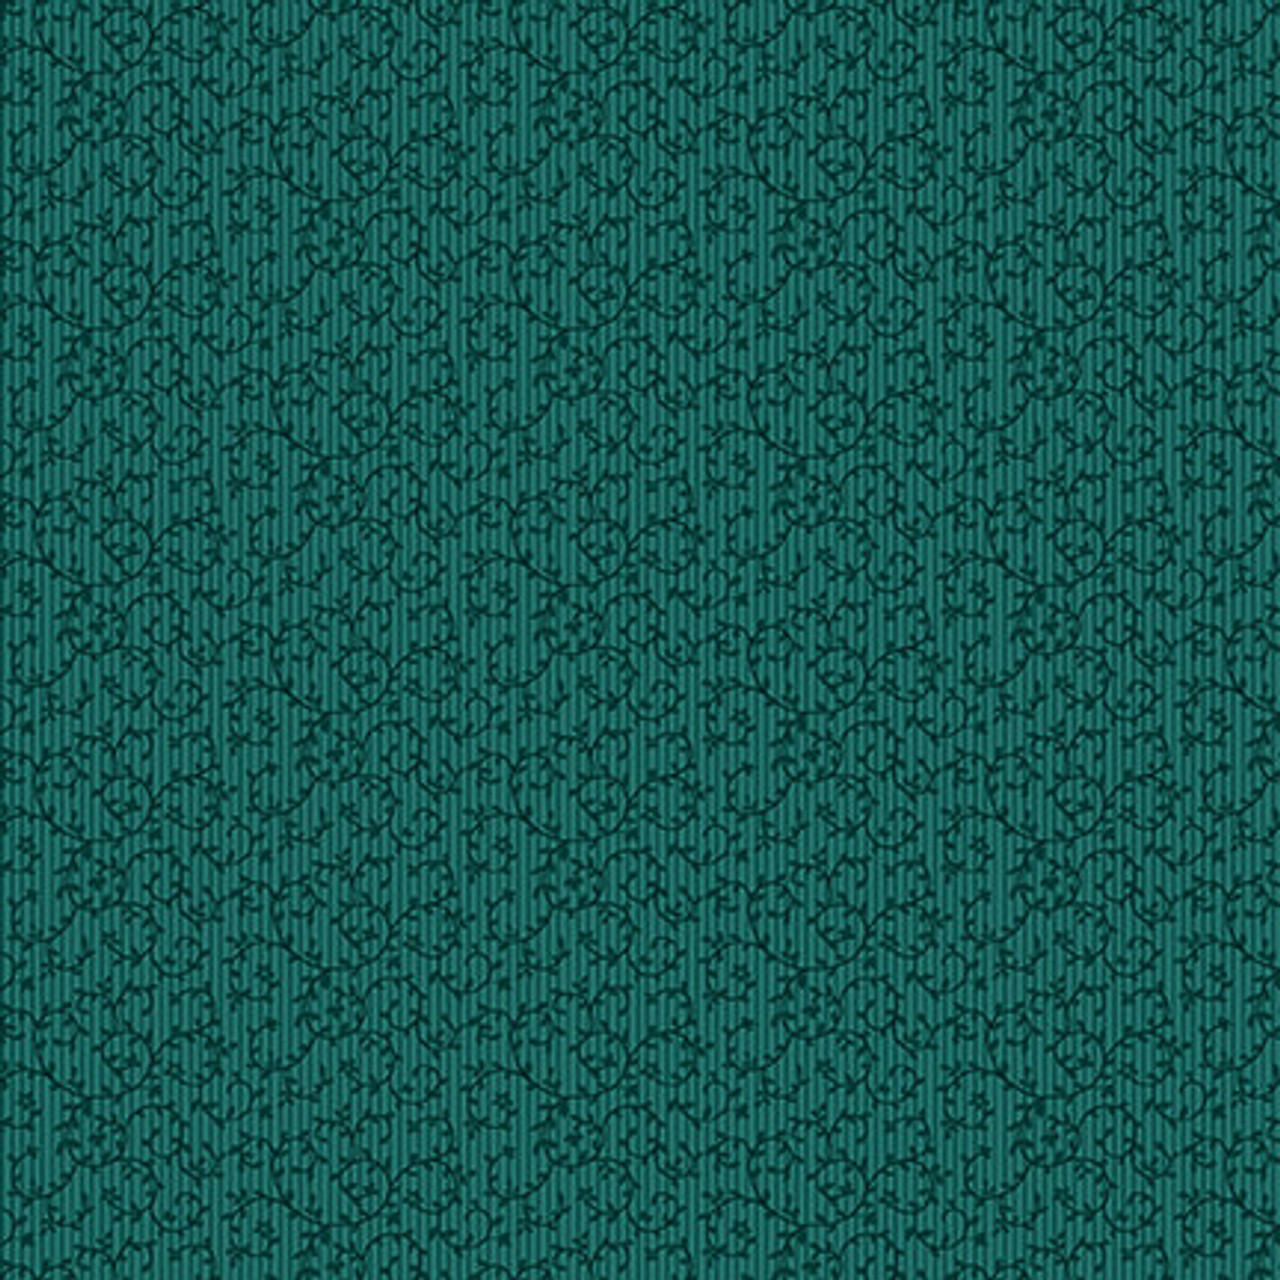 Tarrytown by Michelle Yeo : Tiny Vines - Teal